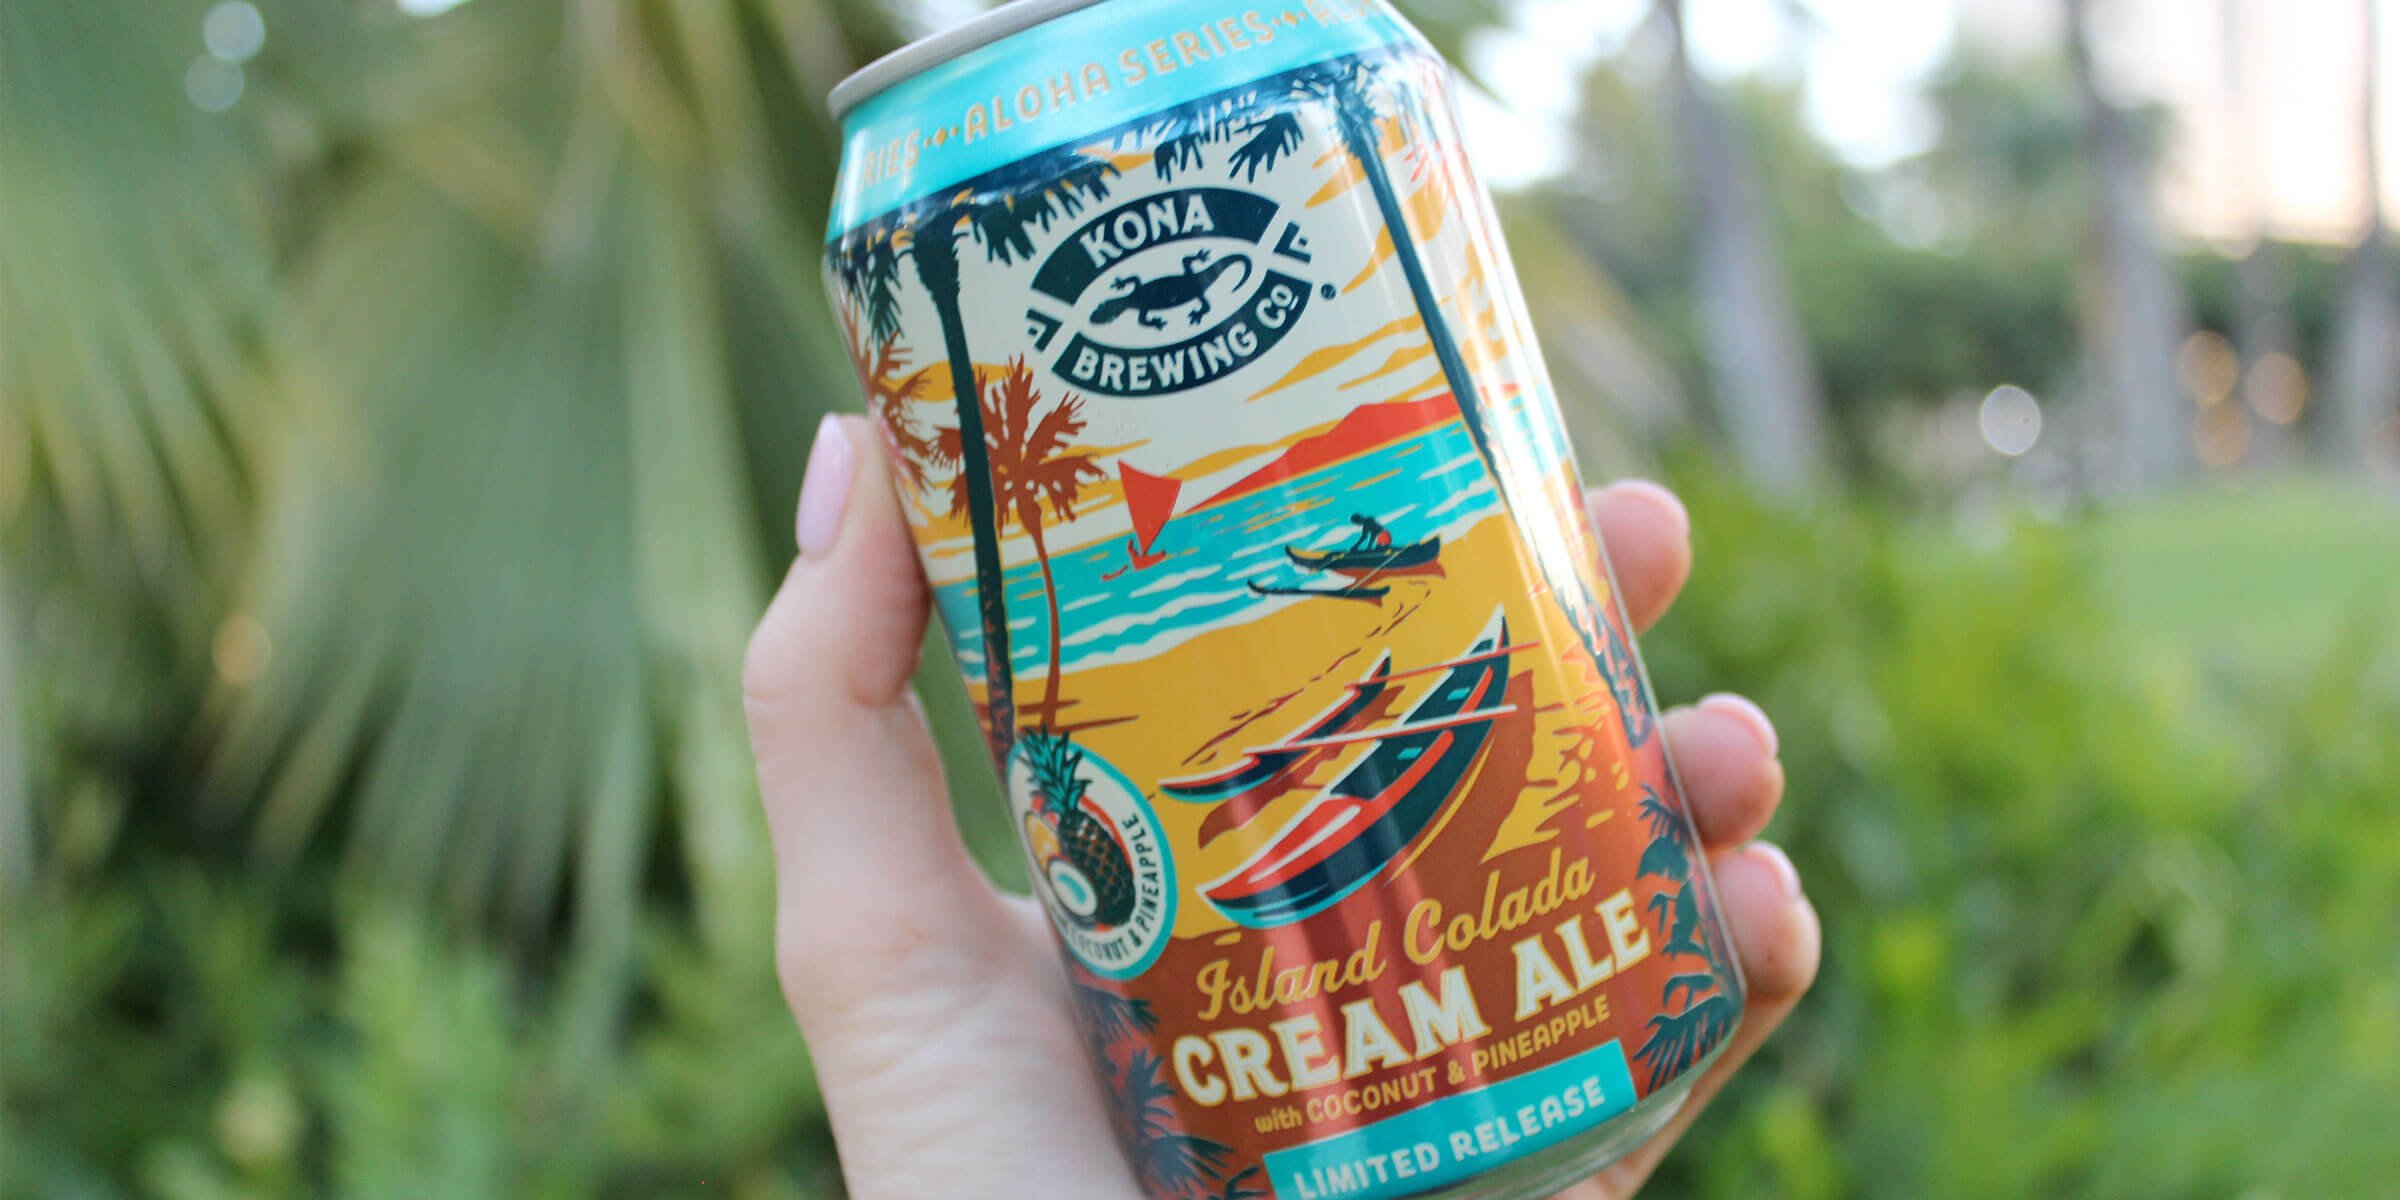 Kona Brewing Co.'s new Island Colada Cream Ale is a tropical cream ale that brings the flavors of Hawaii to the mainland and throughout the islands.